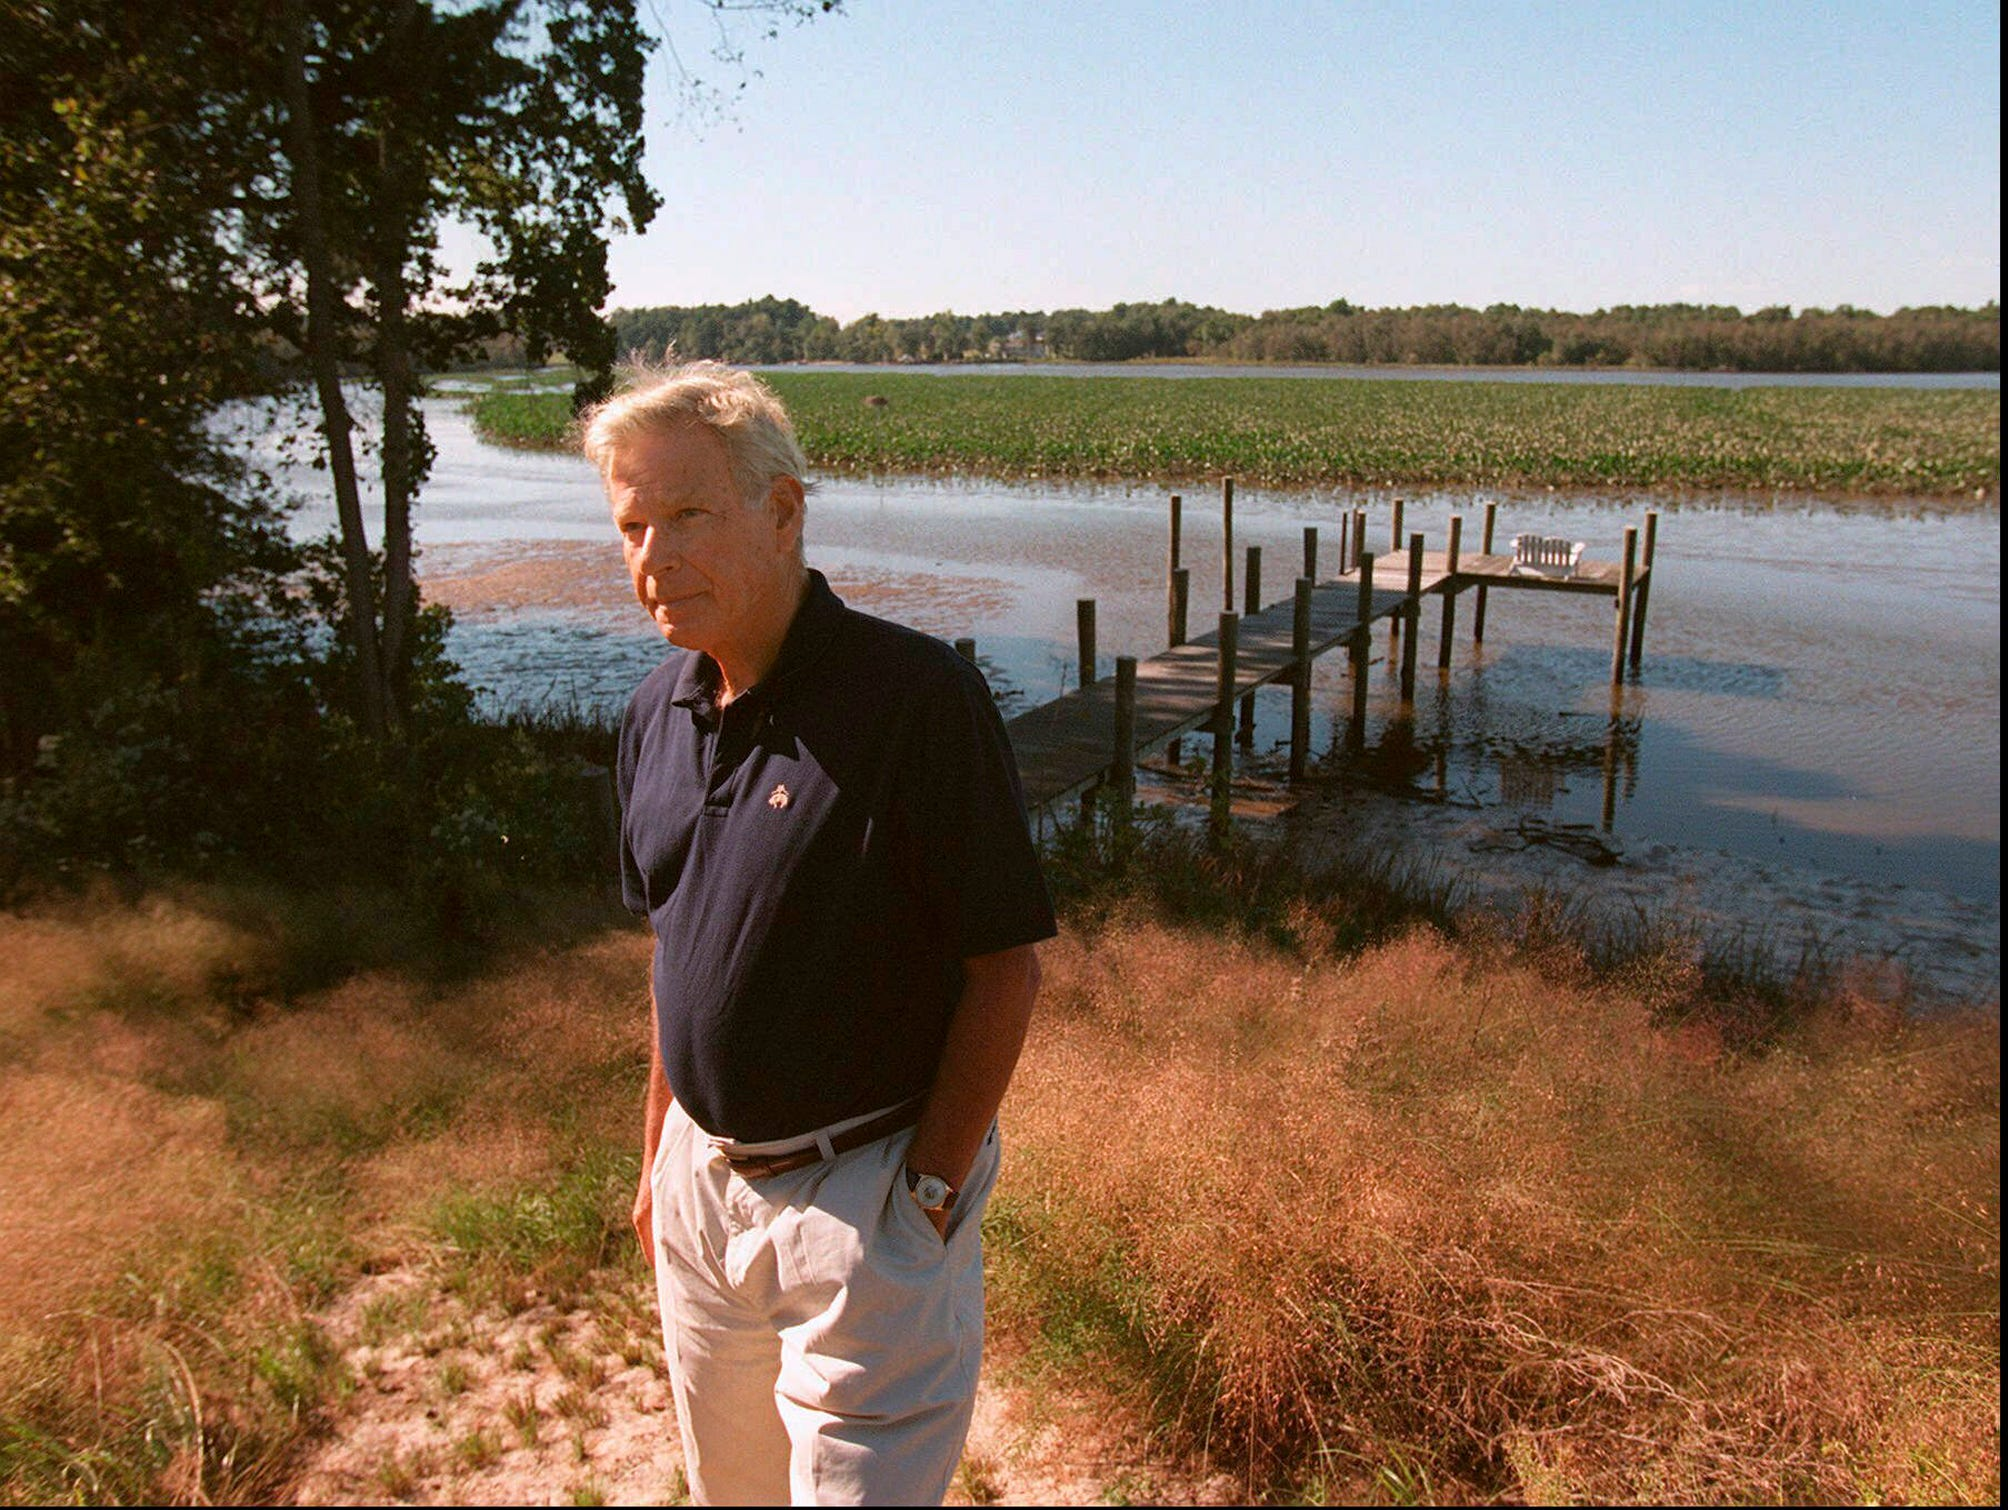 In a Sunday, Sept. 21, 1997 photo, former Maryland Governor Harry Hughes stands on the banks of his property on the Choptank River near Denton, Md. Former Maryland Gov. Harry R. Hughes, who prided himself on restoring public faith in the political process, died Wednesday, March 13, 2019. He was 92.